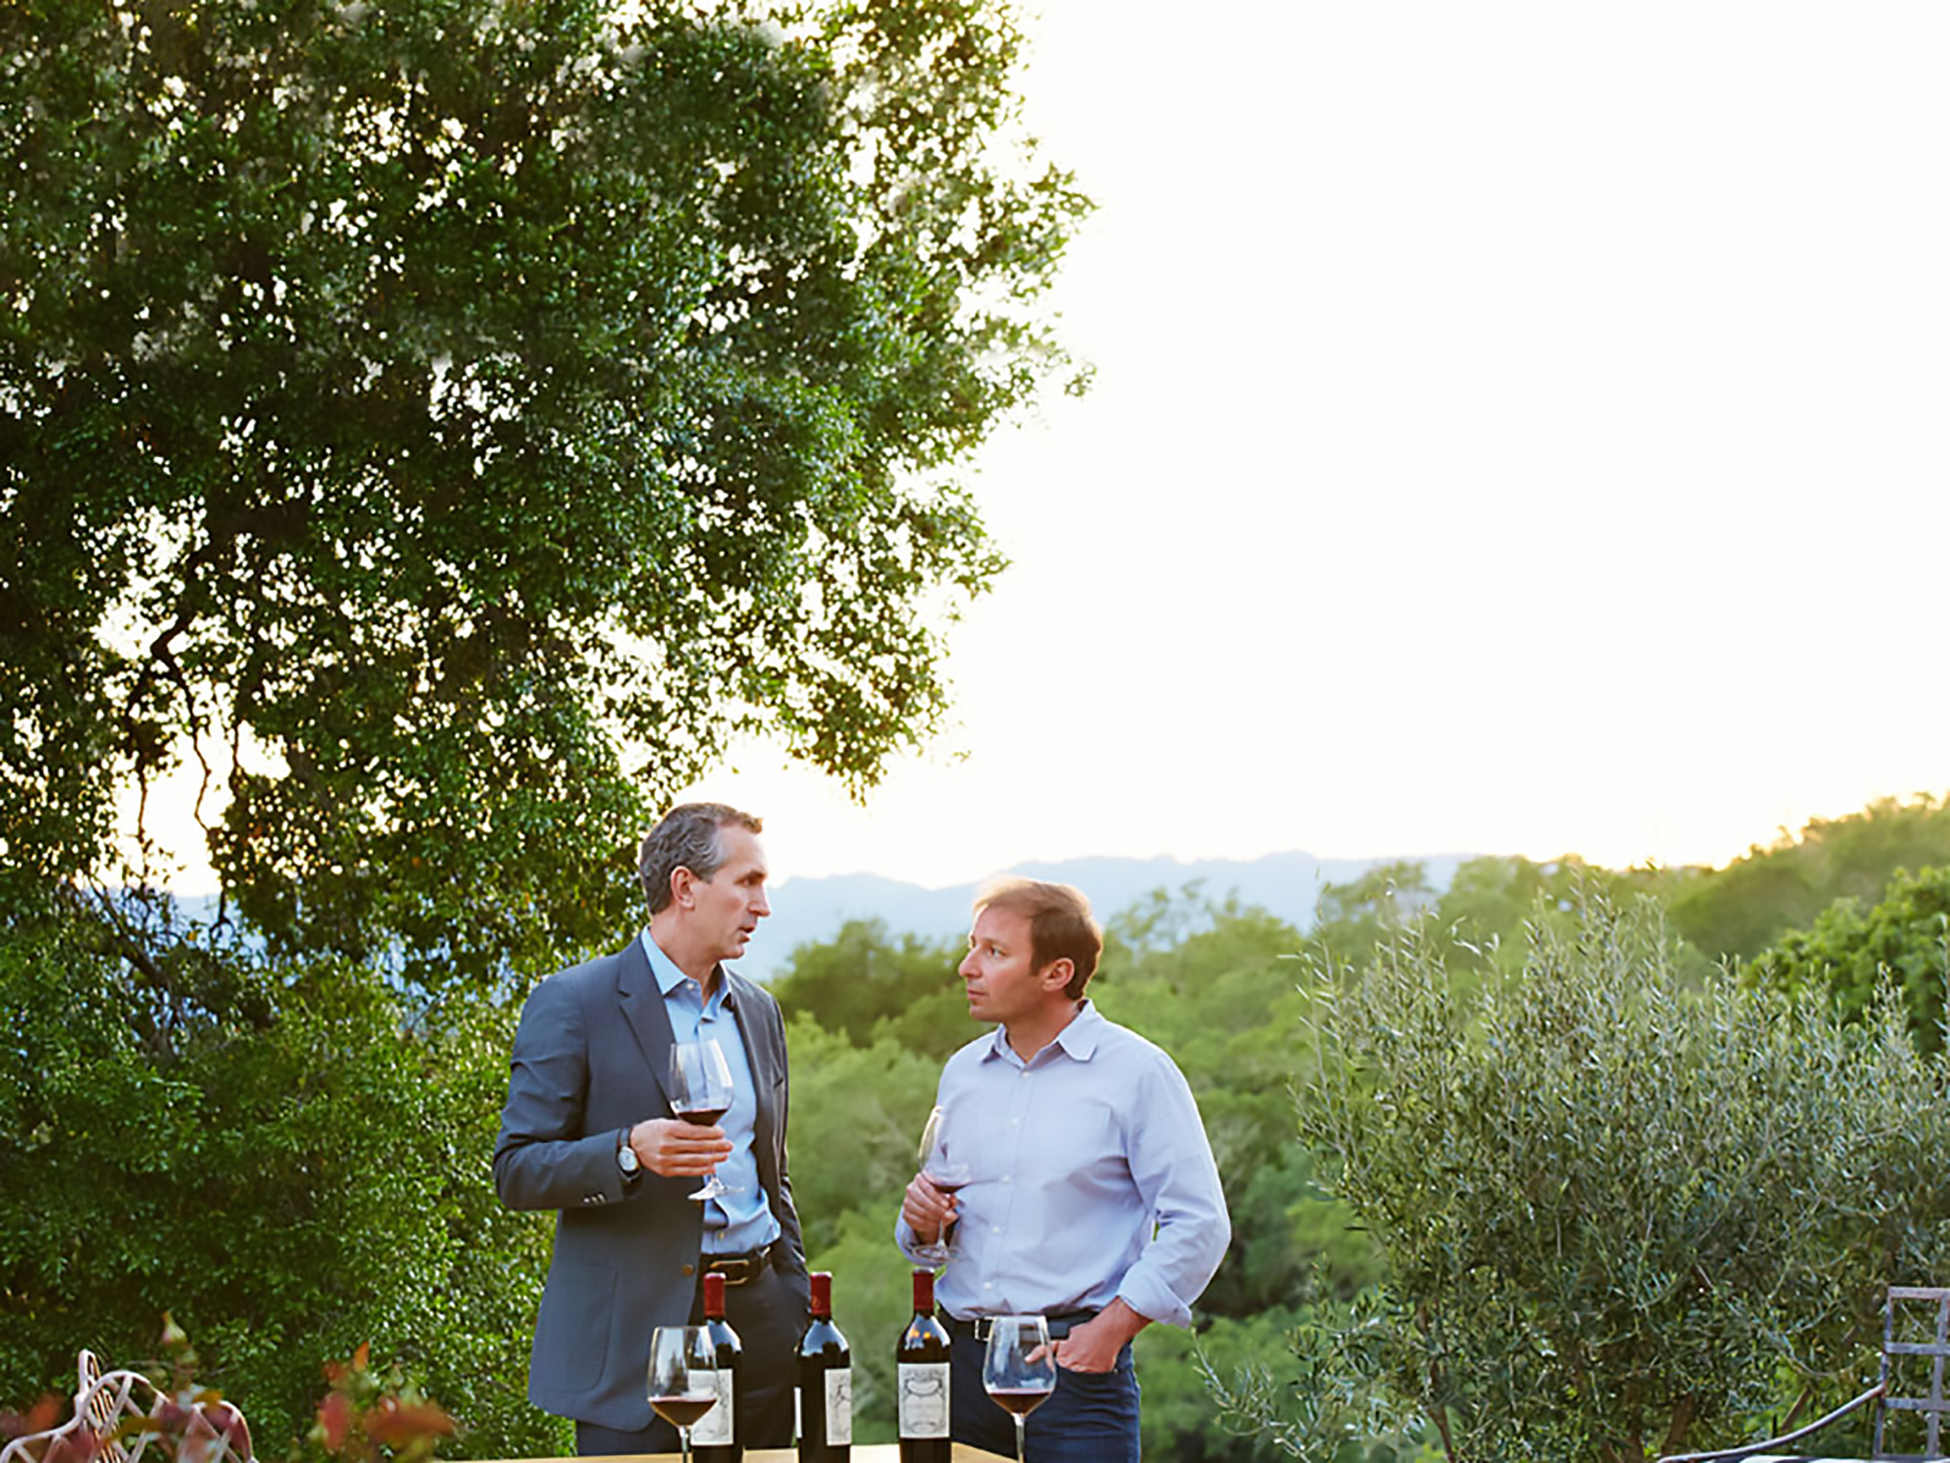 Fairchild Winery owner, Lawrence D. Fairchild with winemaker Philippe Melka